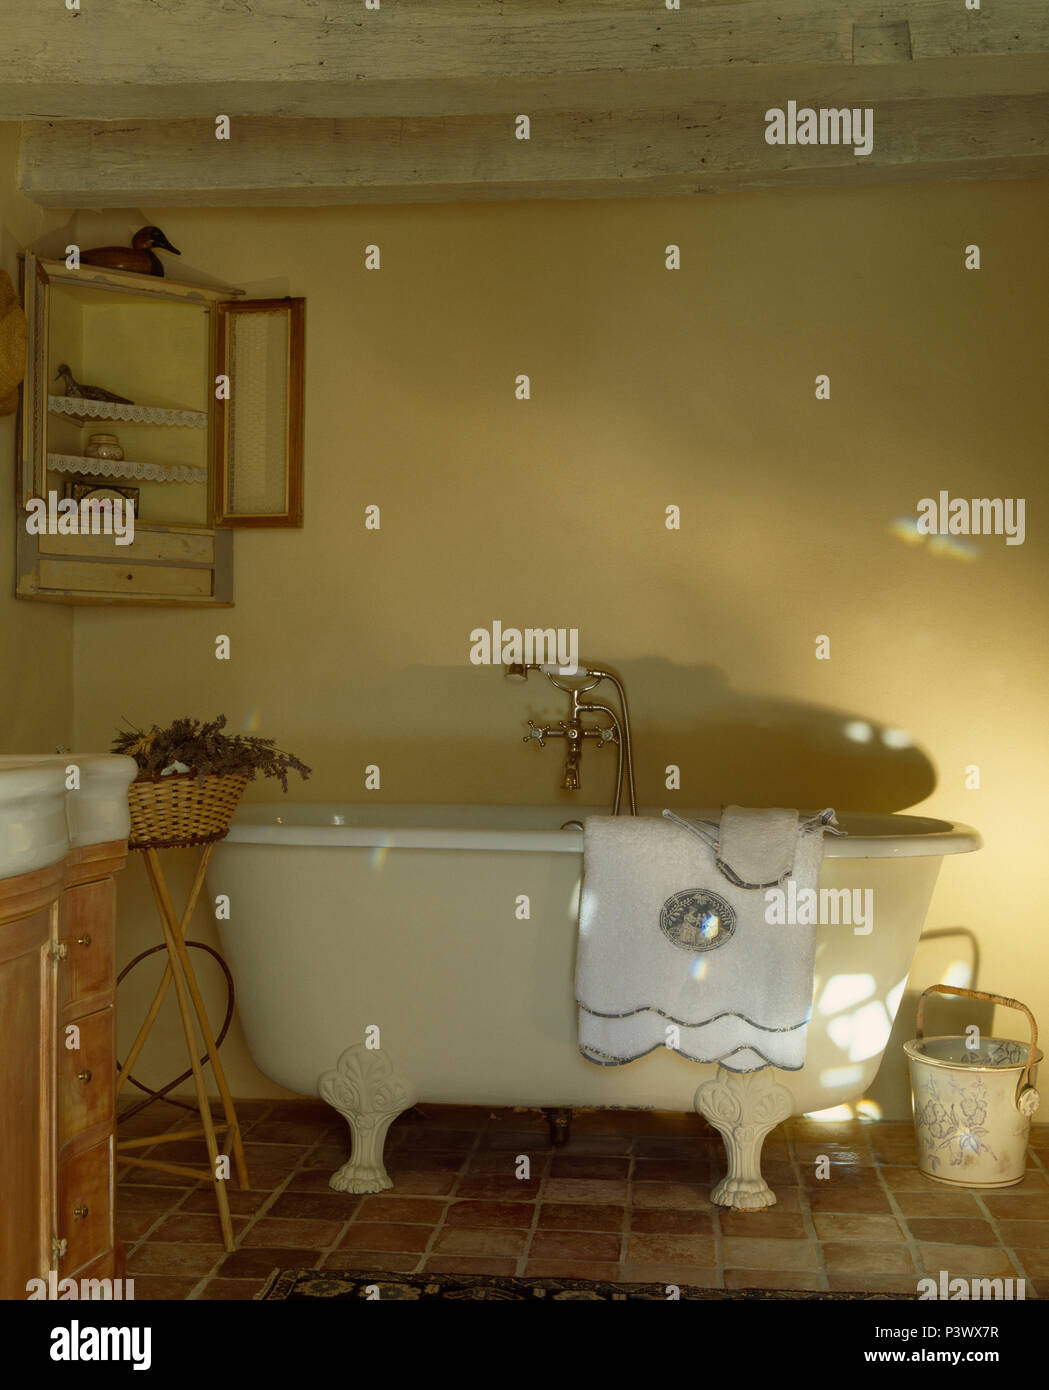 White towel on old claw-foot bath in pale yellow French country bathroom - Stock Image